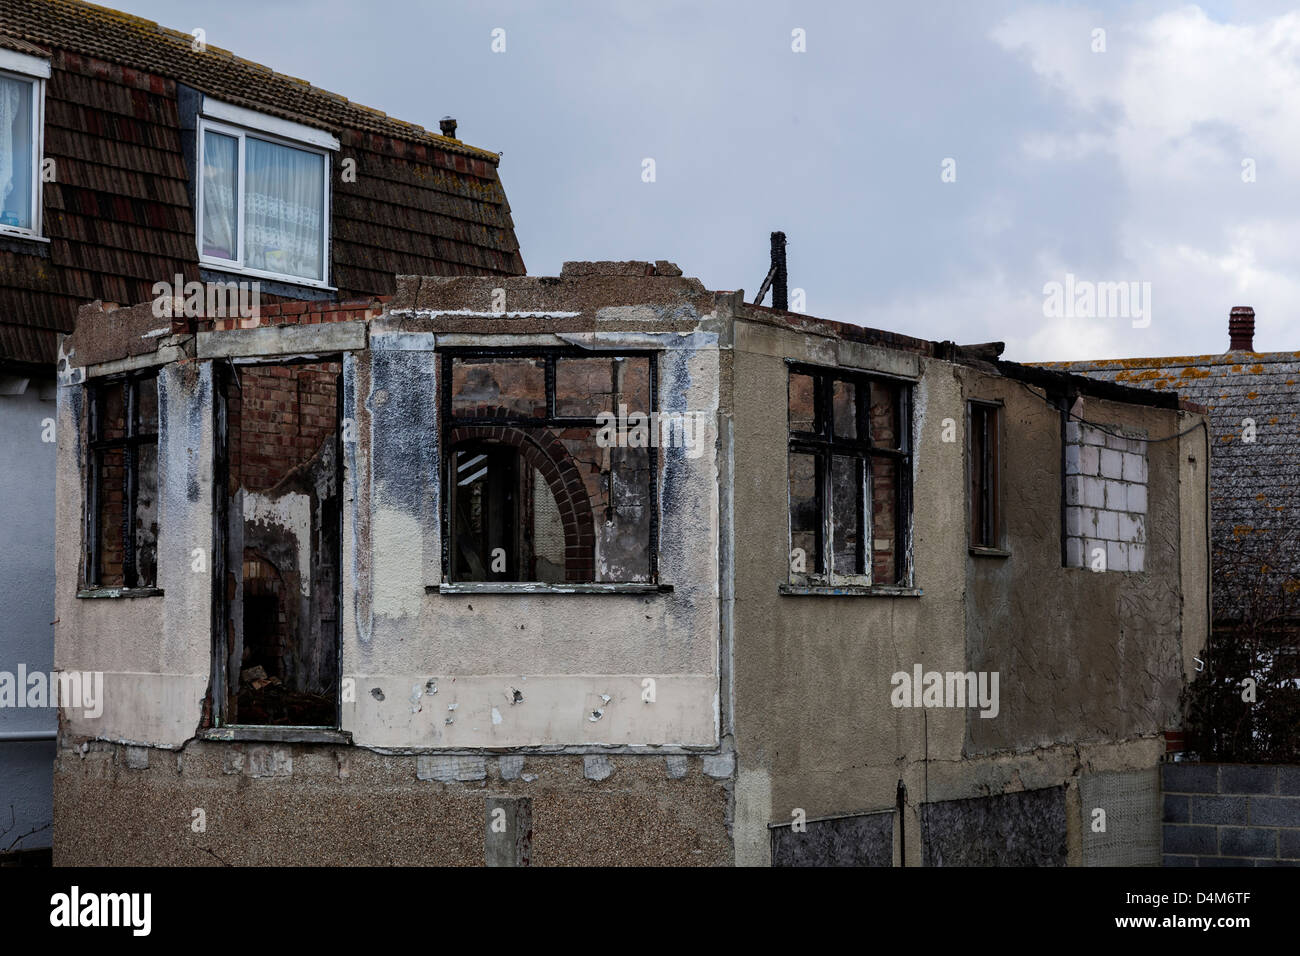 Dilapidated and Run Down Housing in Jaywick, Essex - Stock Image